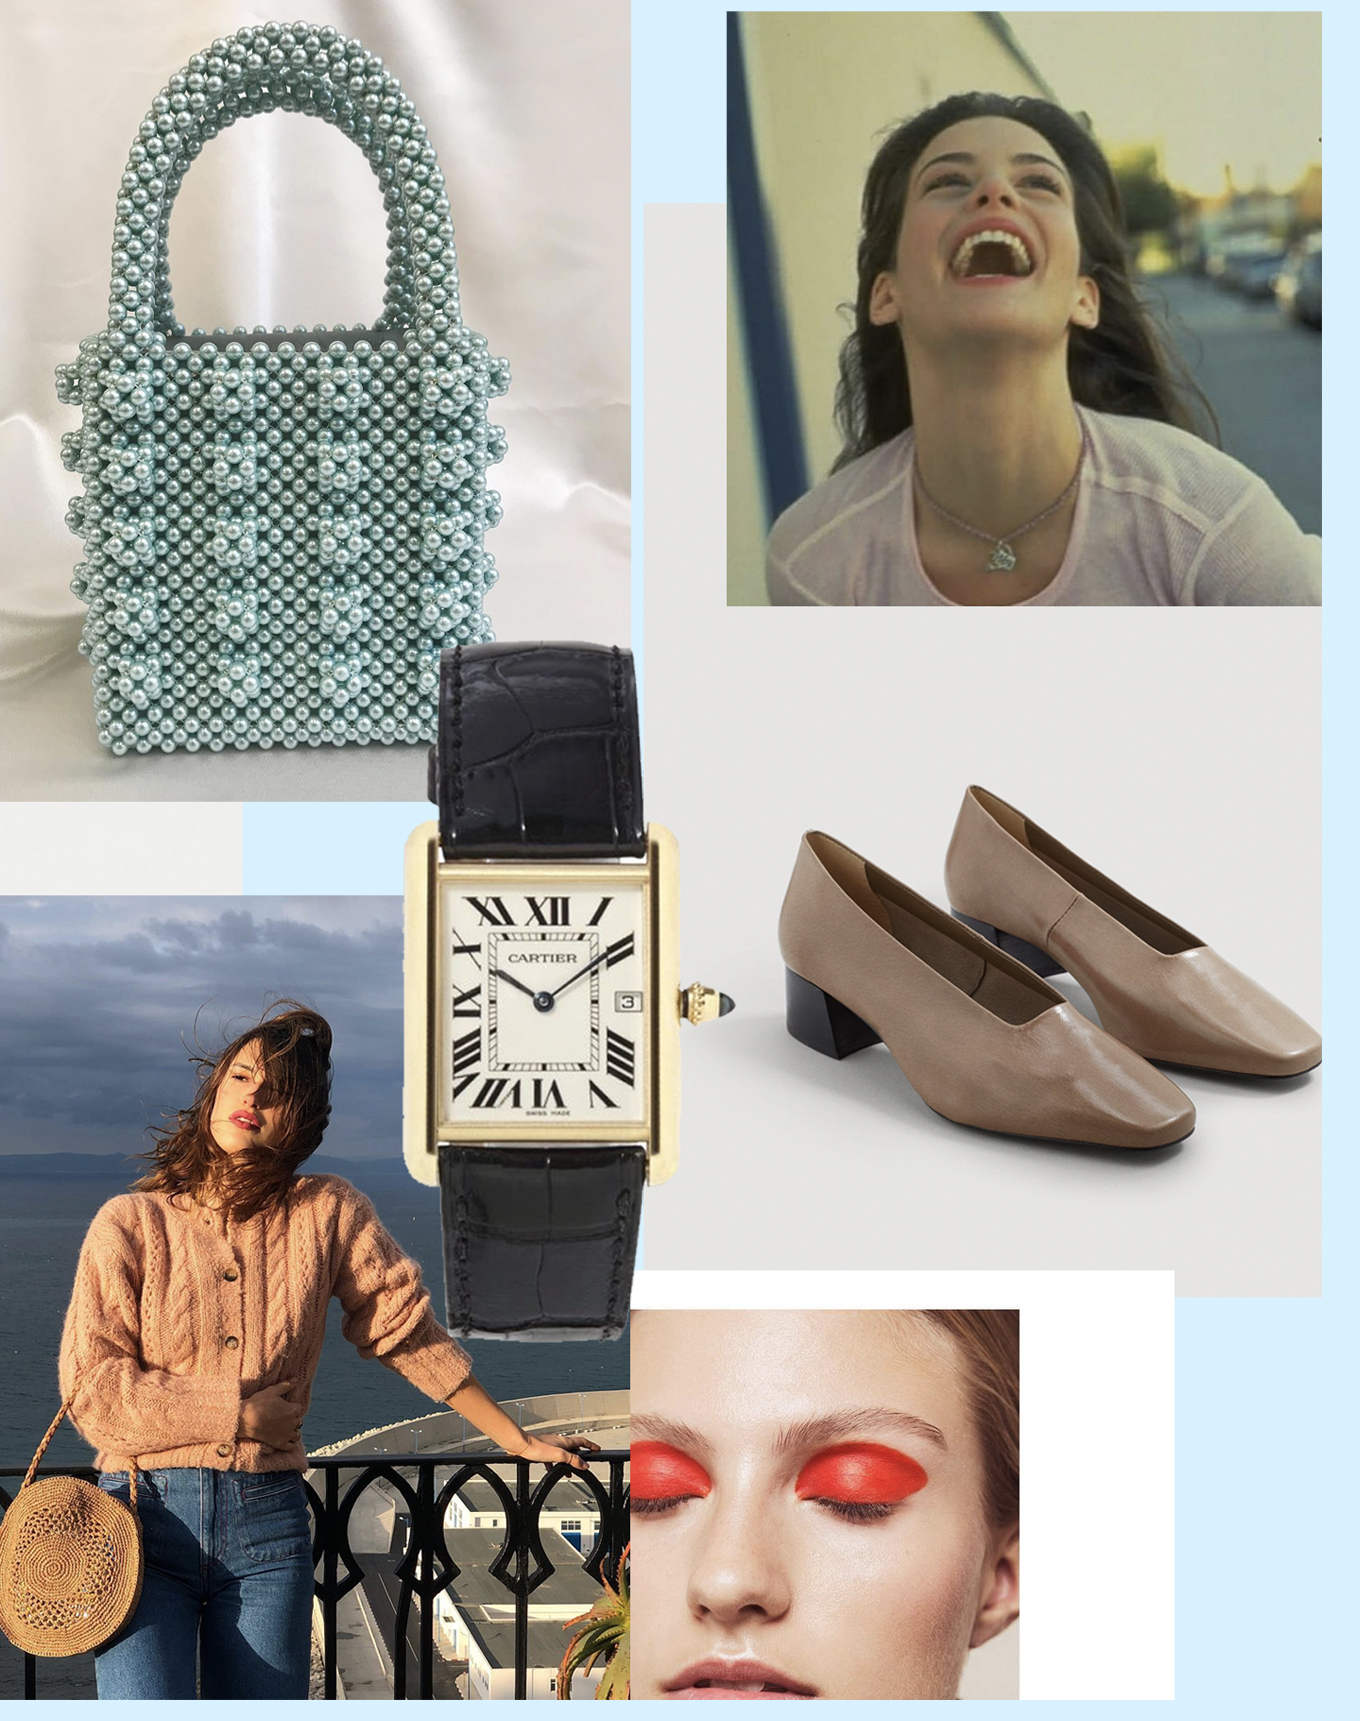 sania claus demina inspiration 2018 cartier jeanne damas shrimps pearl bag mango shoes kofta